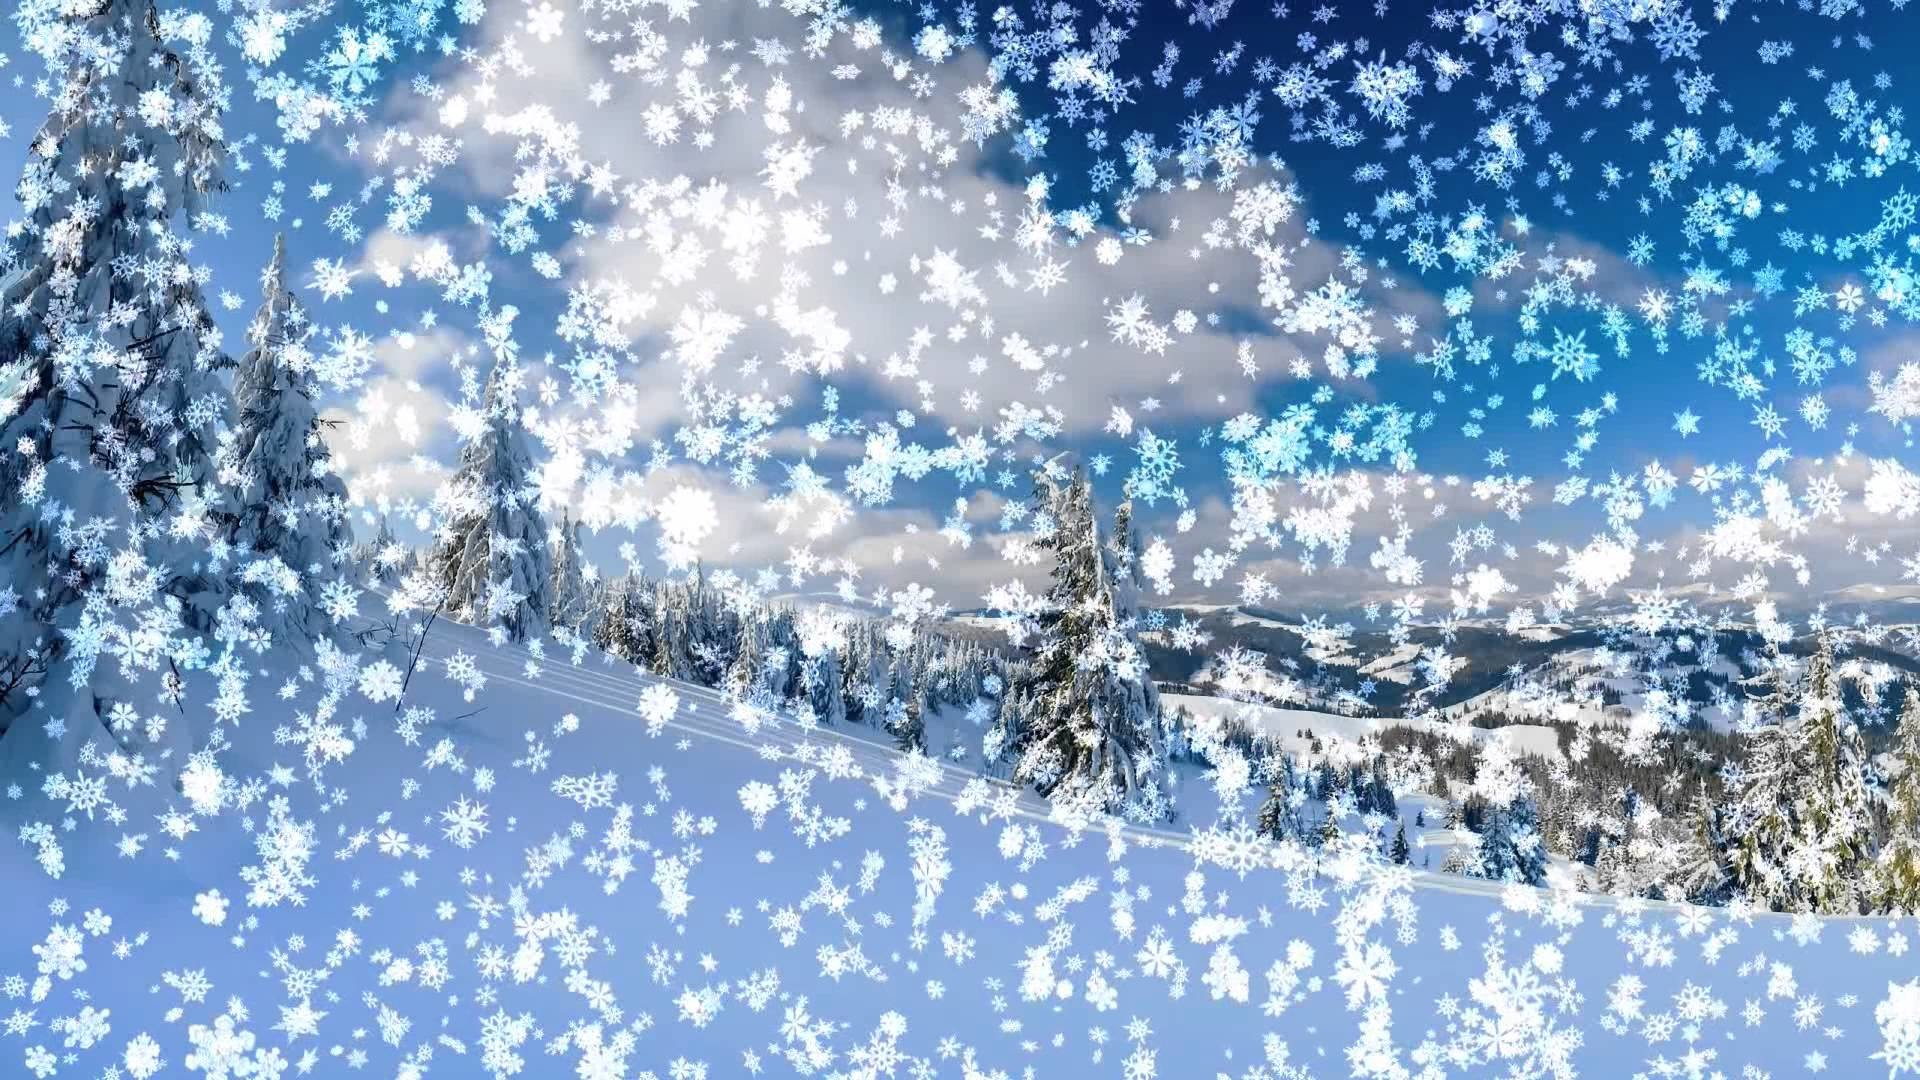 Live Winter Snow Fall Background Wallpaper Falling Snow Animated Wallpaper 57 Images